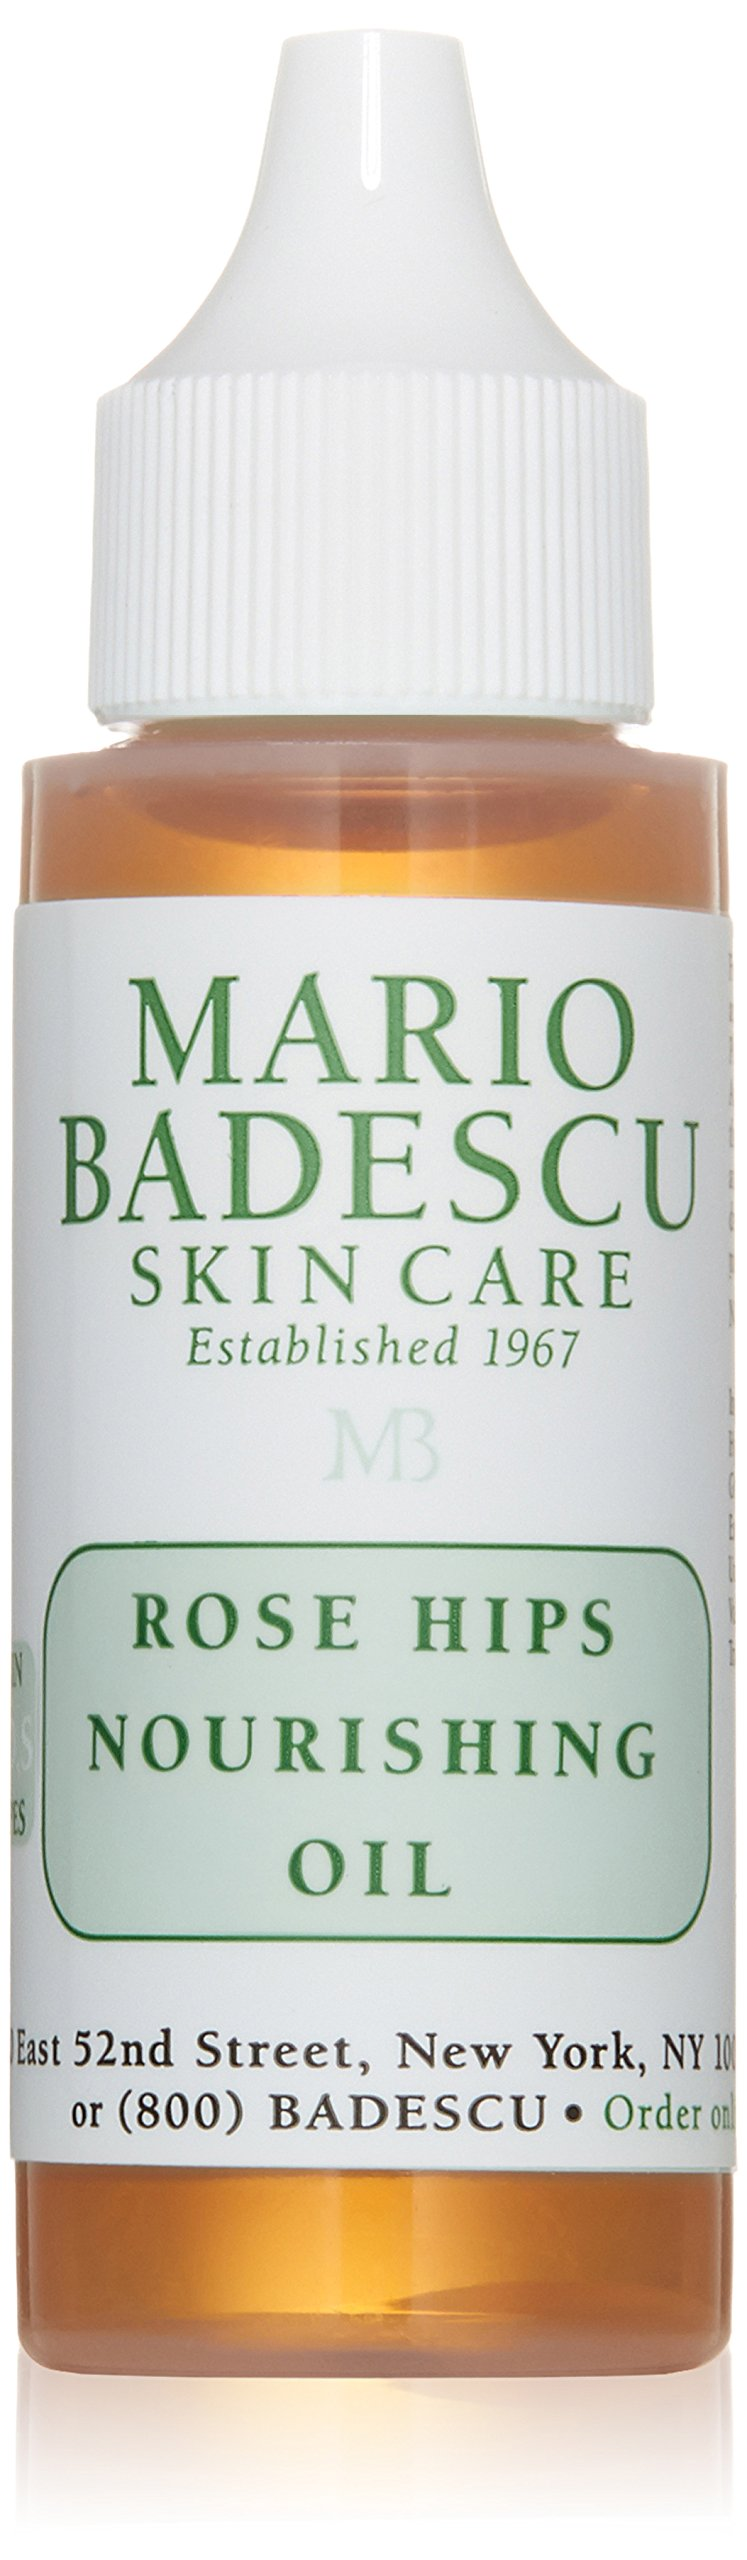 Mario Badescu Rose Hips Nourishing Oil, 1 oz.